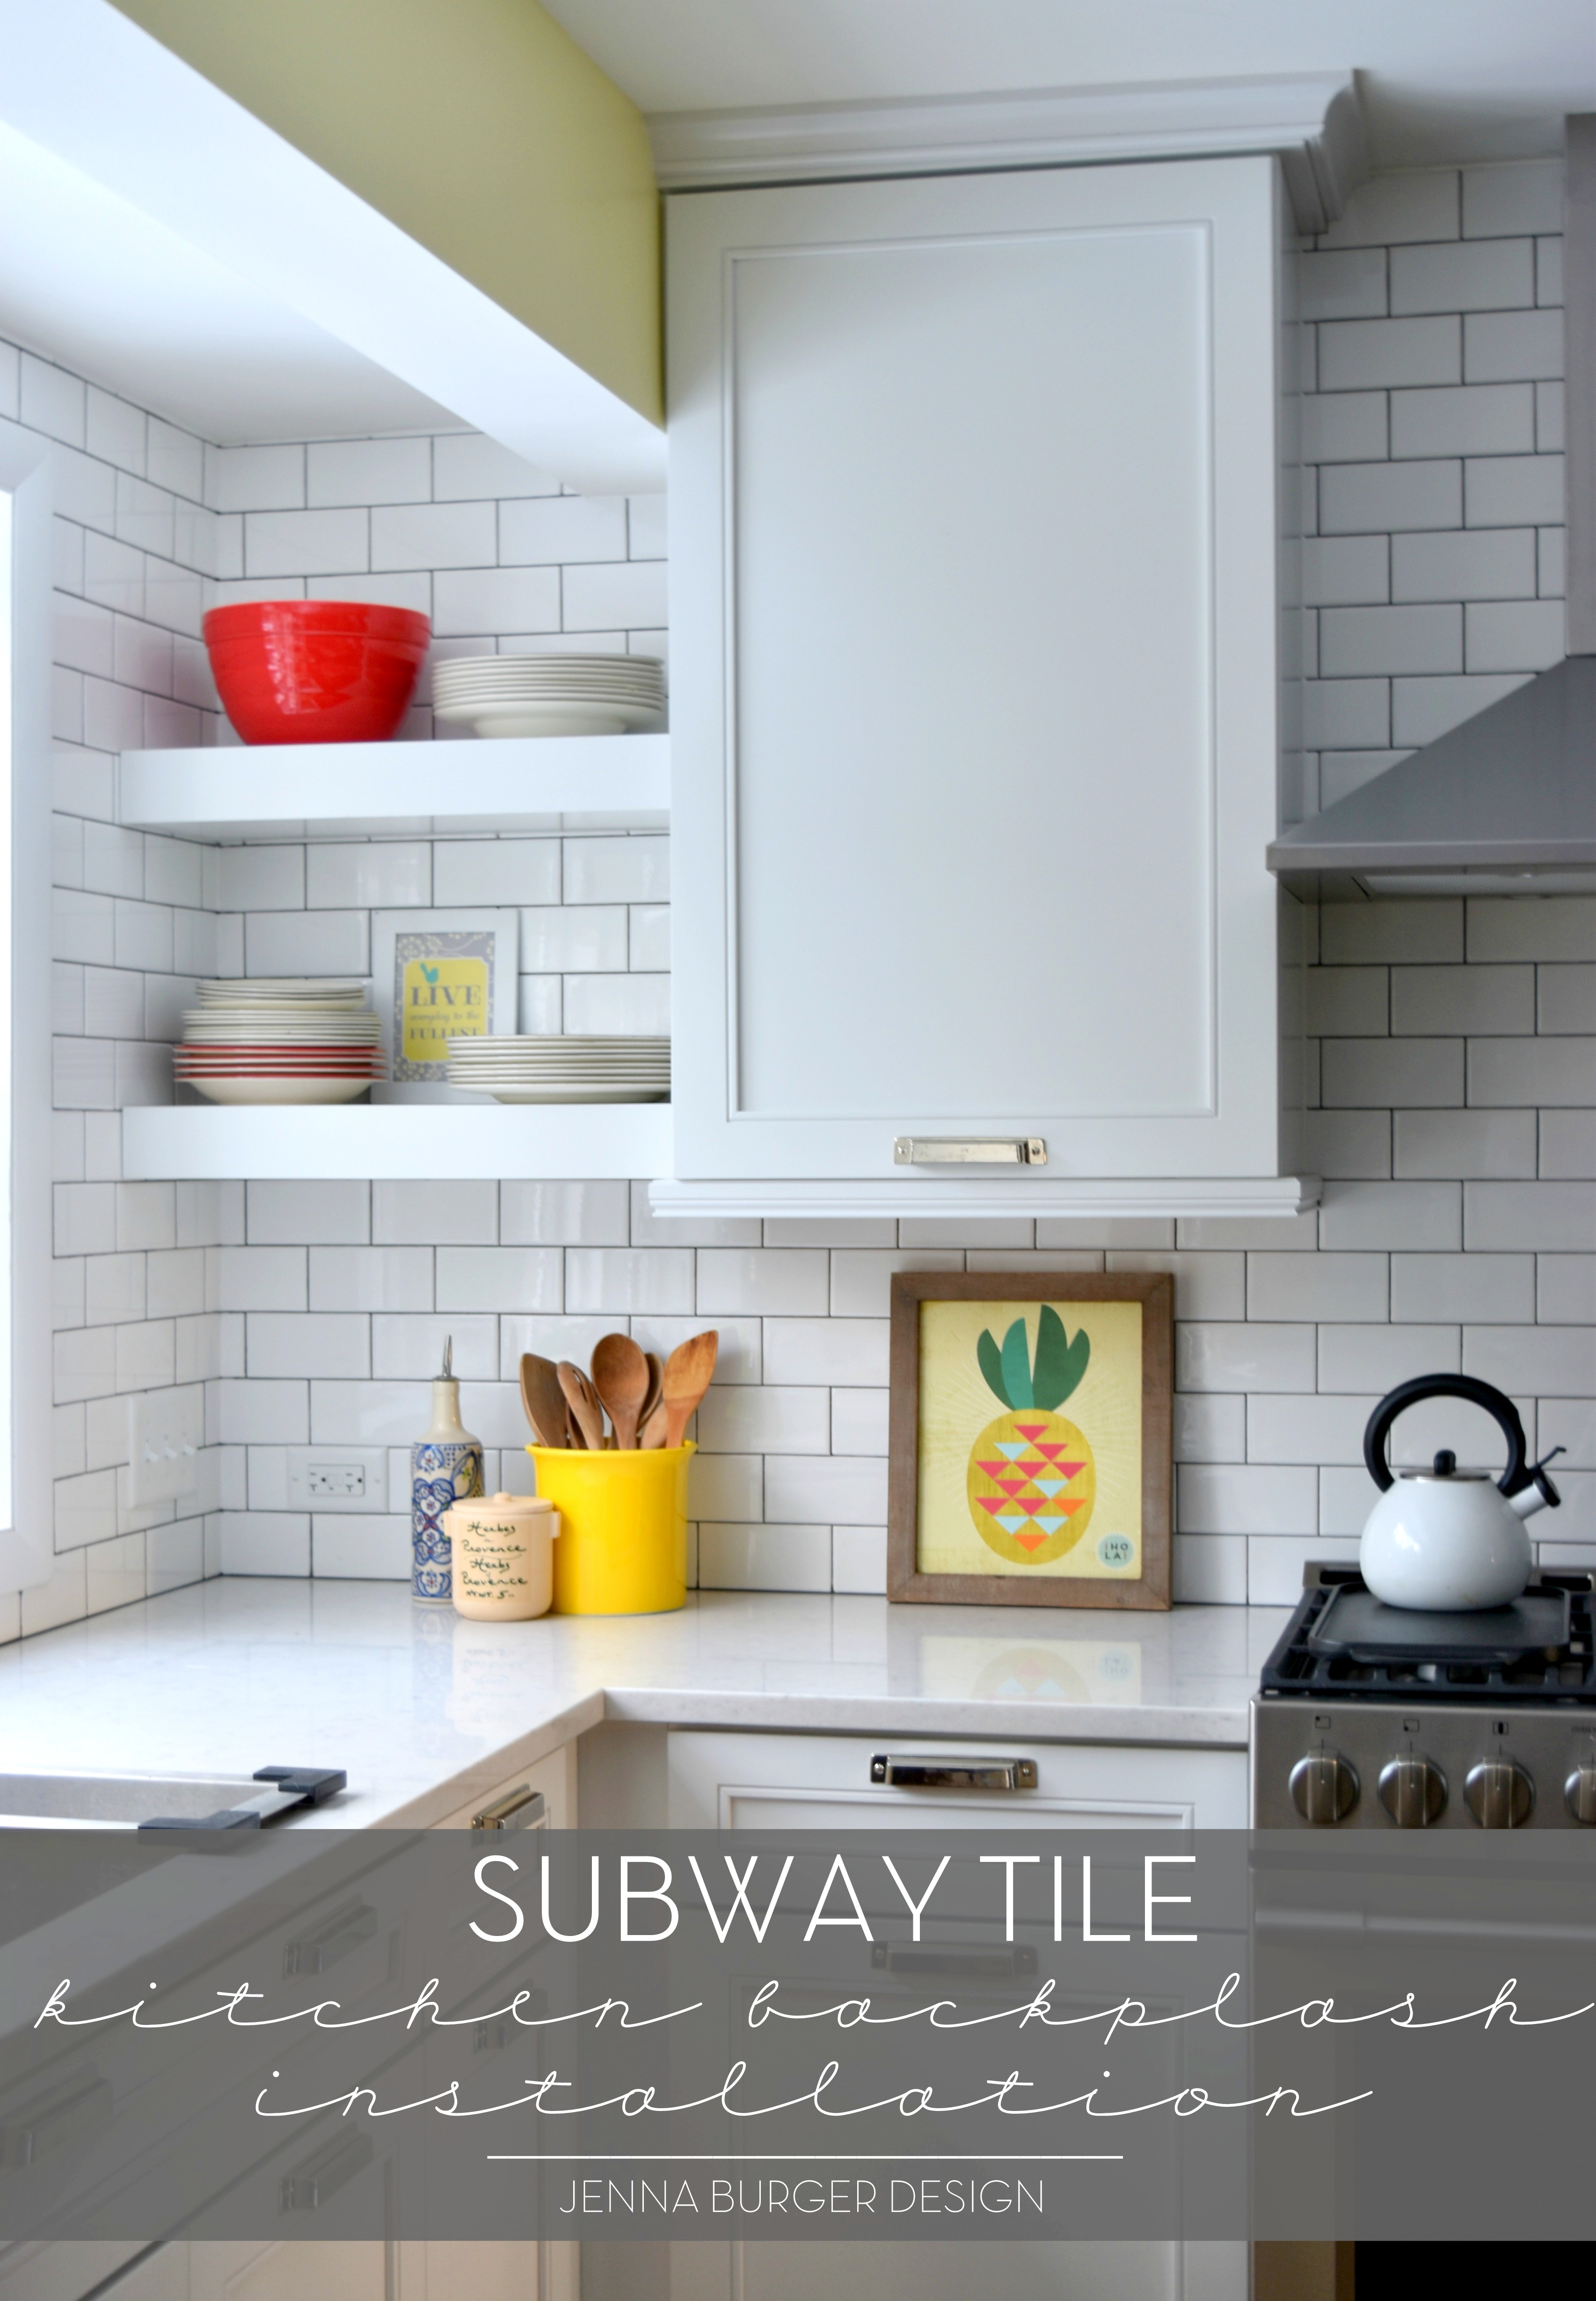 subway tile kitchen backsplash installation installing kitchen backsplash Subway Tile There are many styles colors How do you choose the right